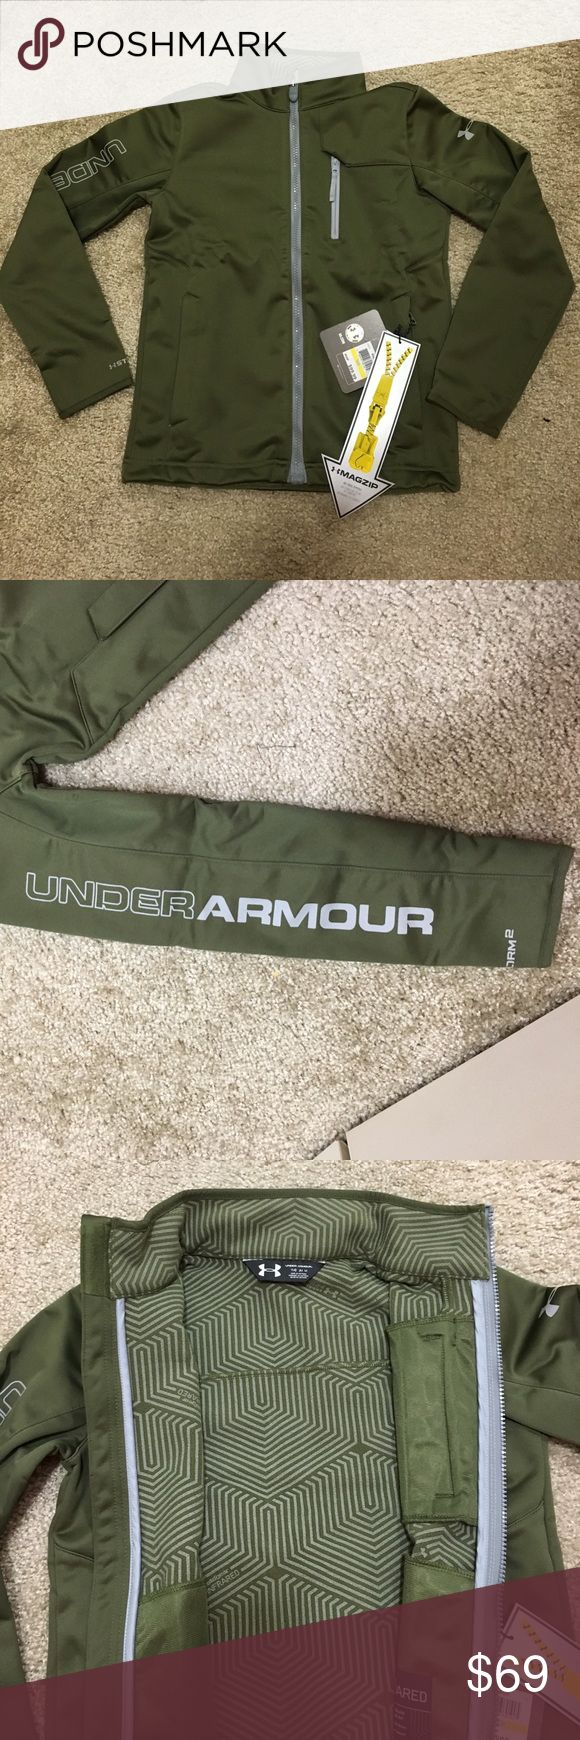 Spotted while shopping on Poshmark: Boys Under Armour highly water-resistant coat! #poshmark #fashion #shopping #style #Under Armour #Other